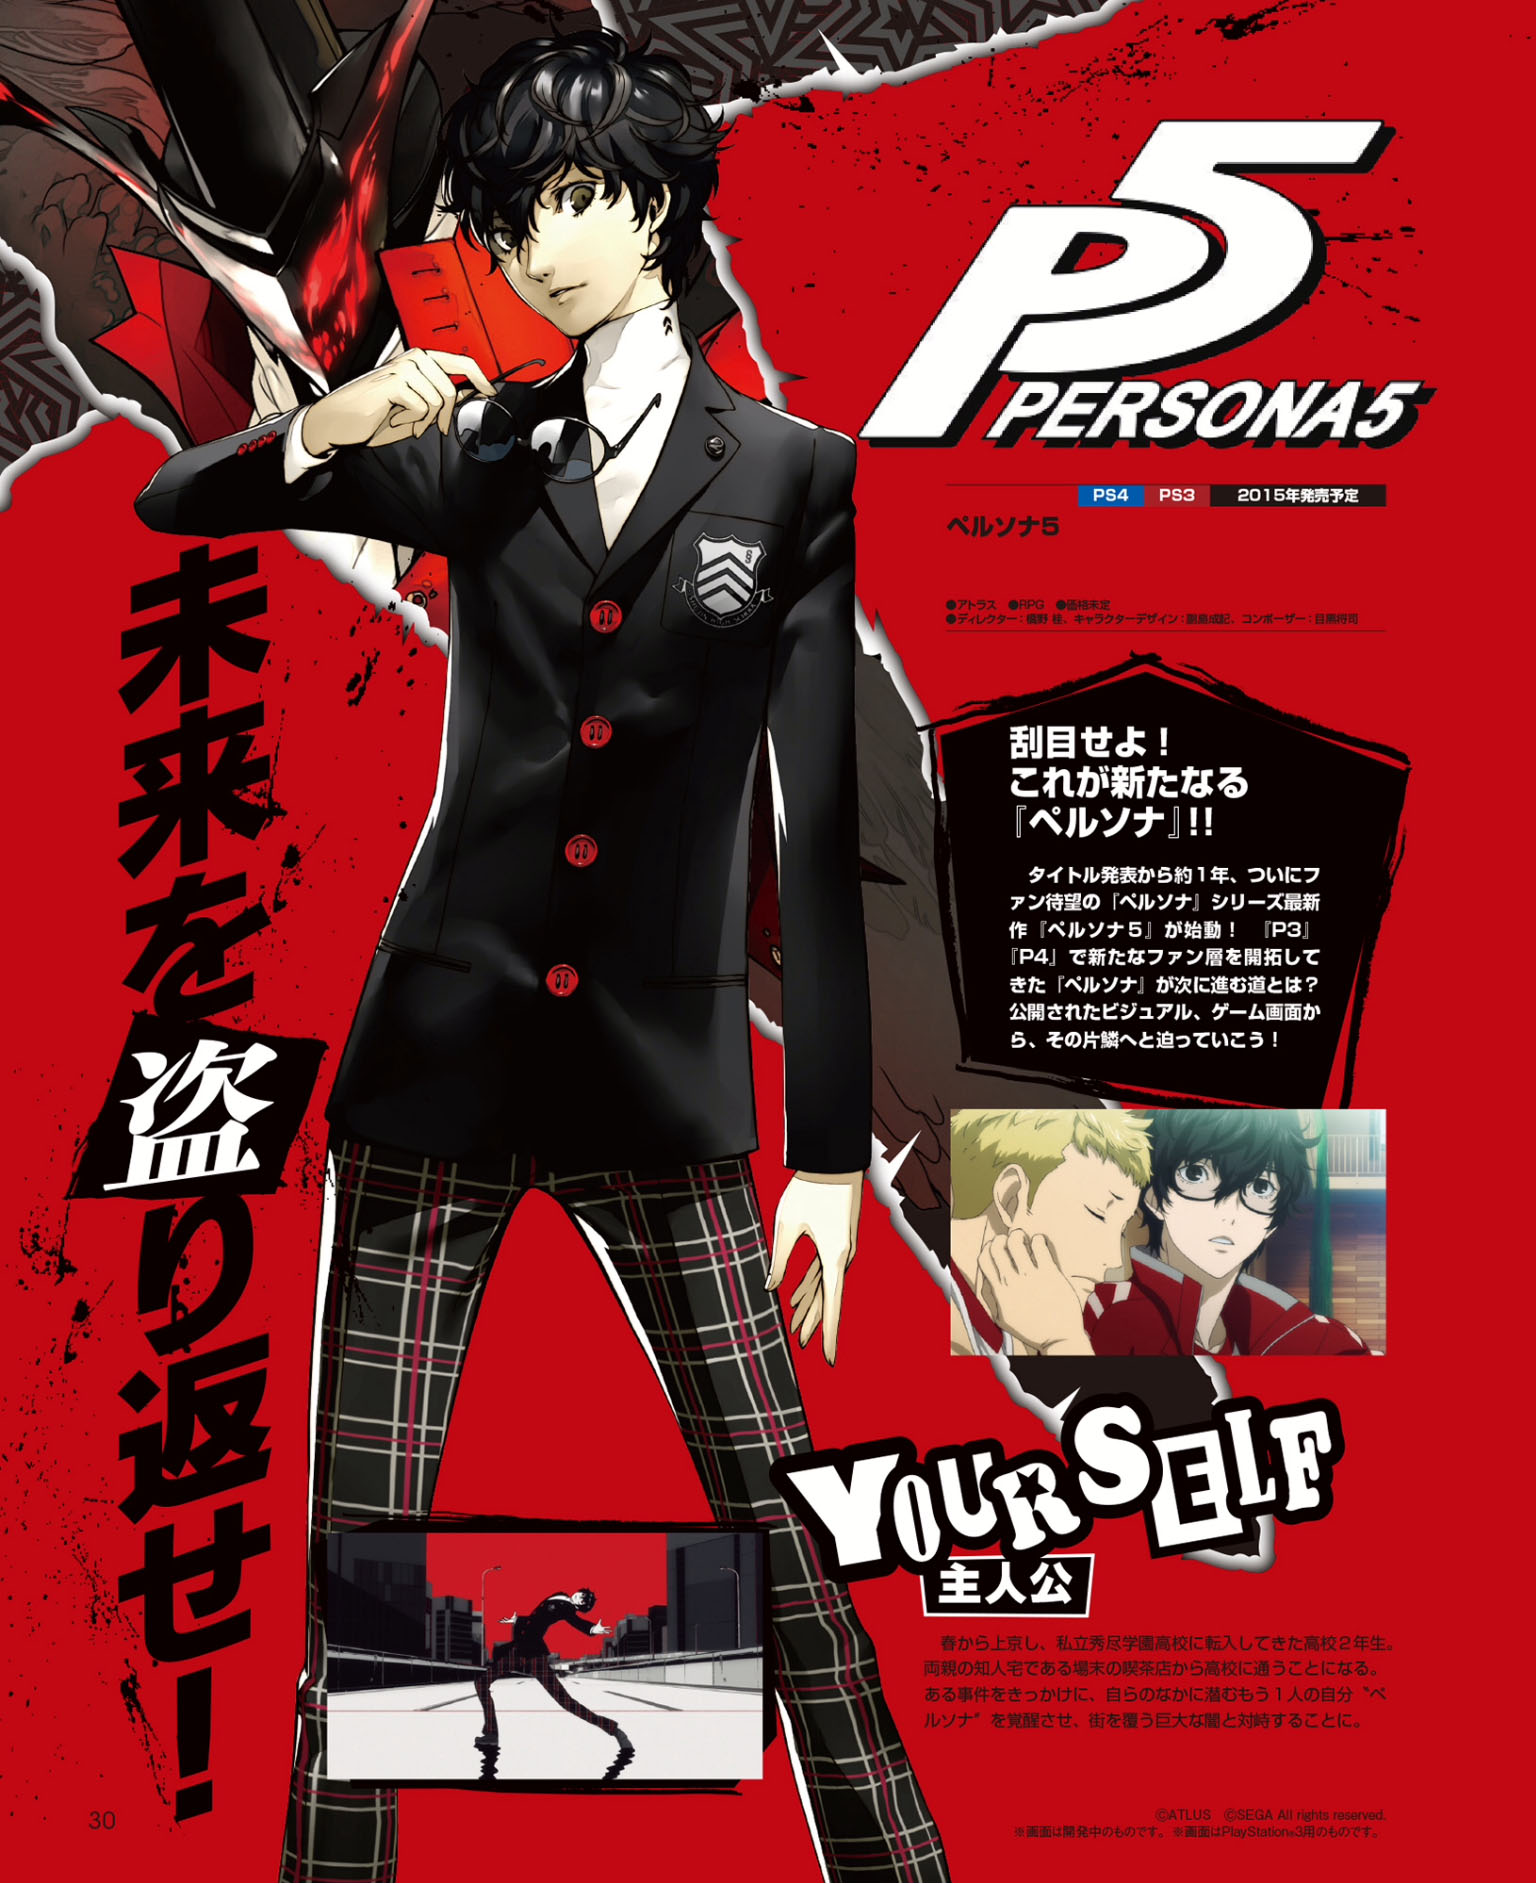 Persona 3 female protagonist dating games 8